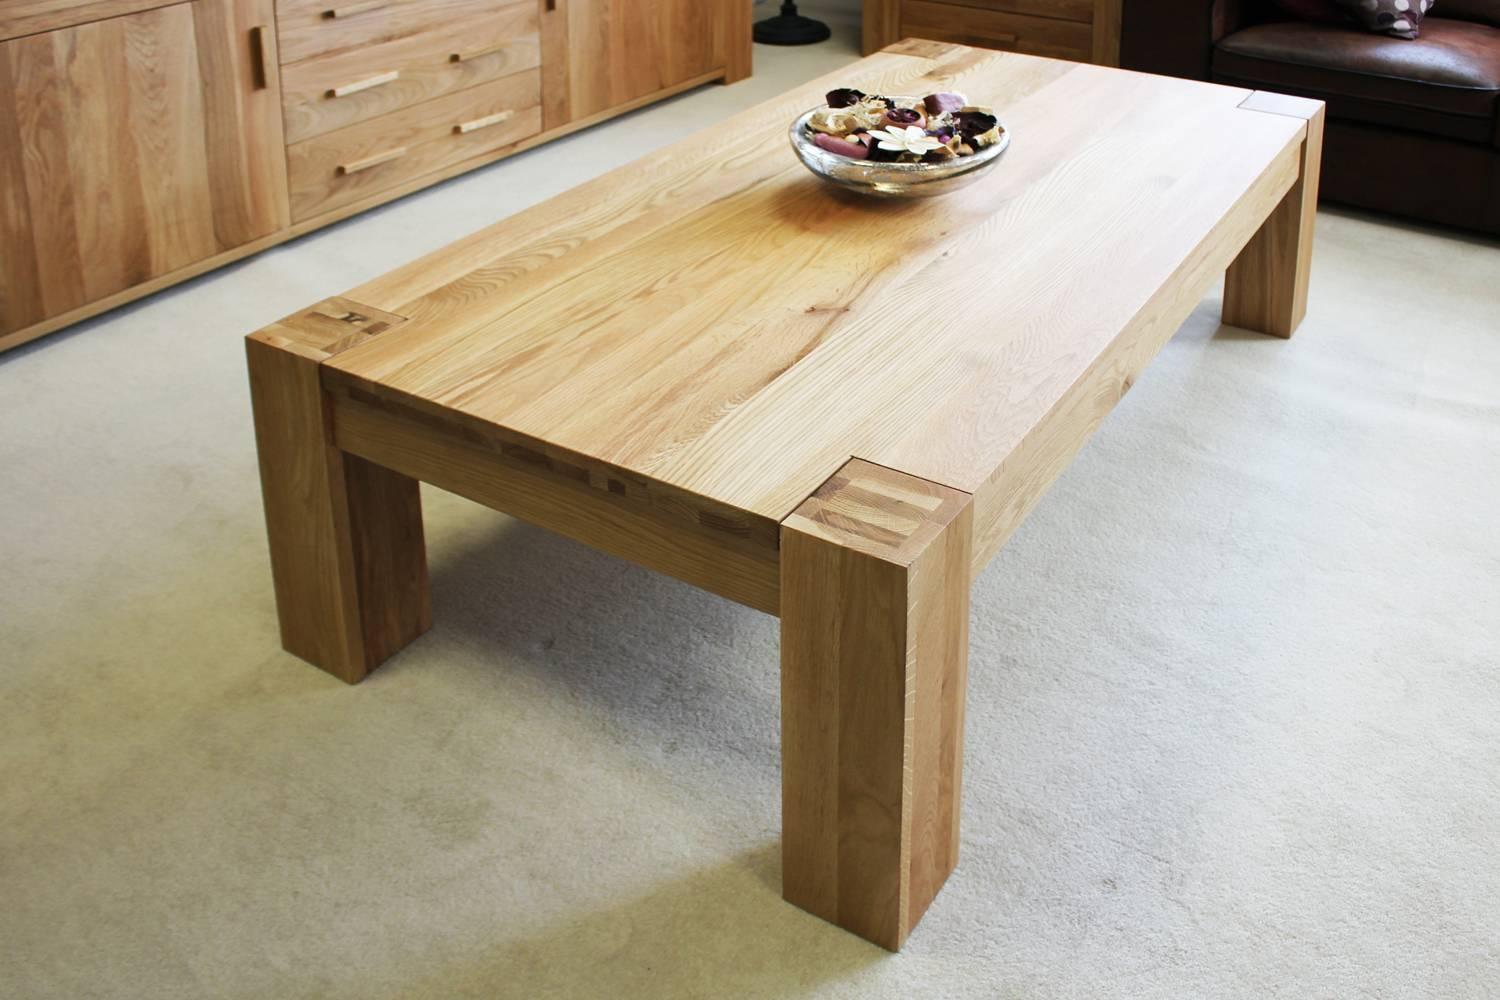 Oxf Direct, The Luxury Furniture Store - Aston Oak Range throughout Chunky Coffee Tables (Image 16 of 30)